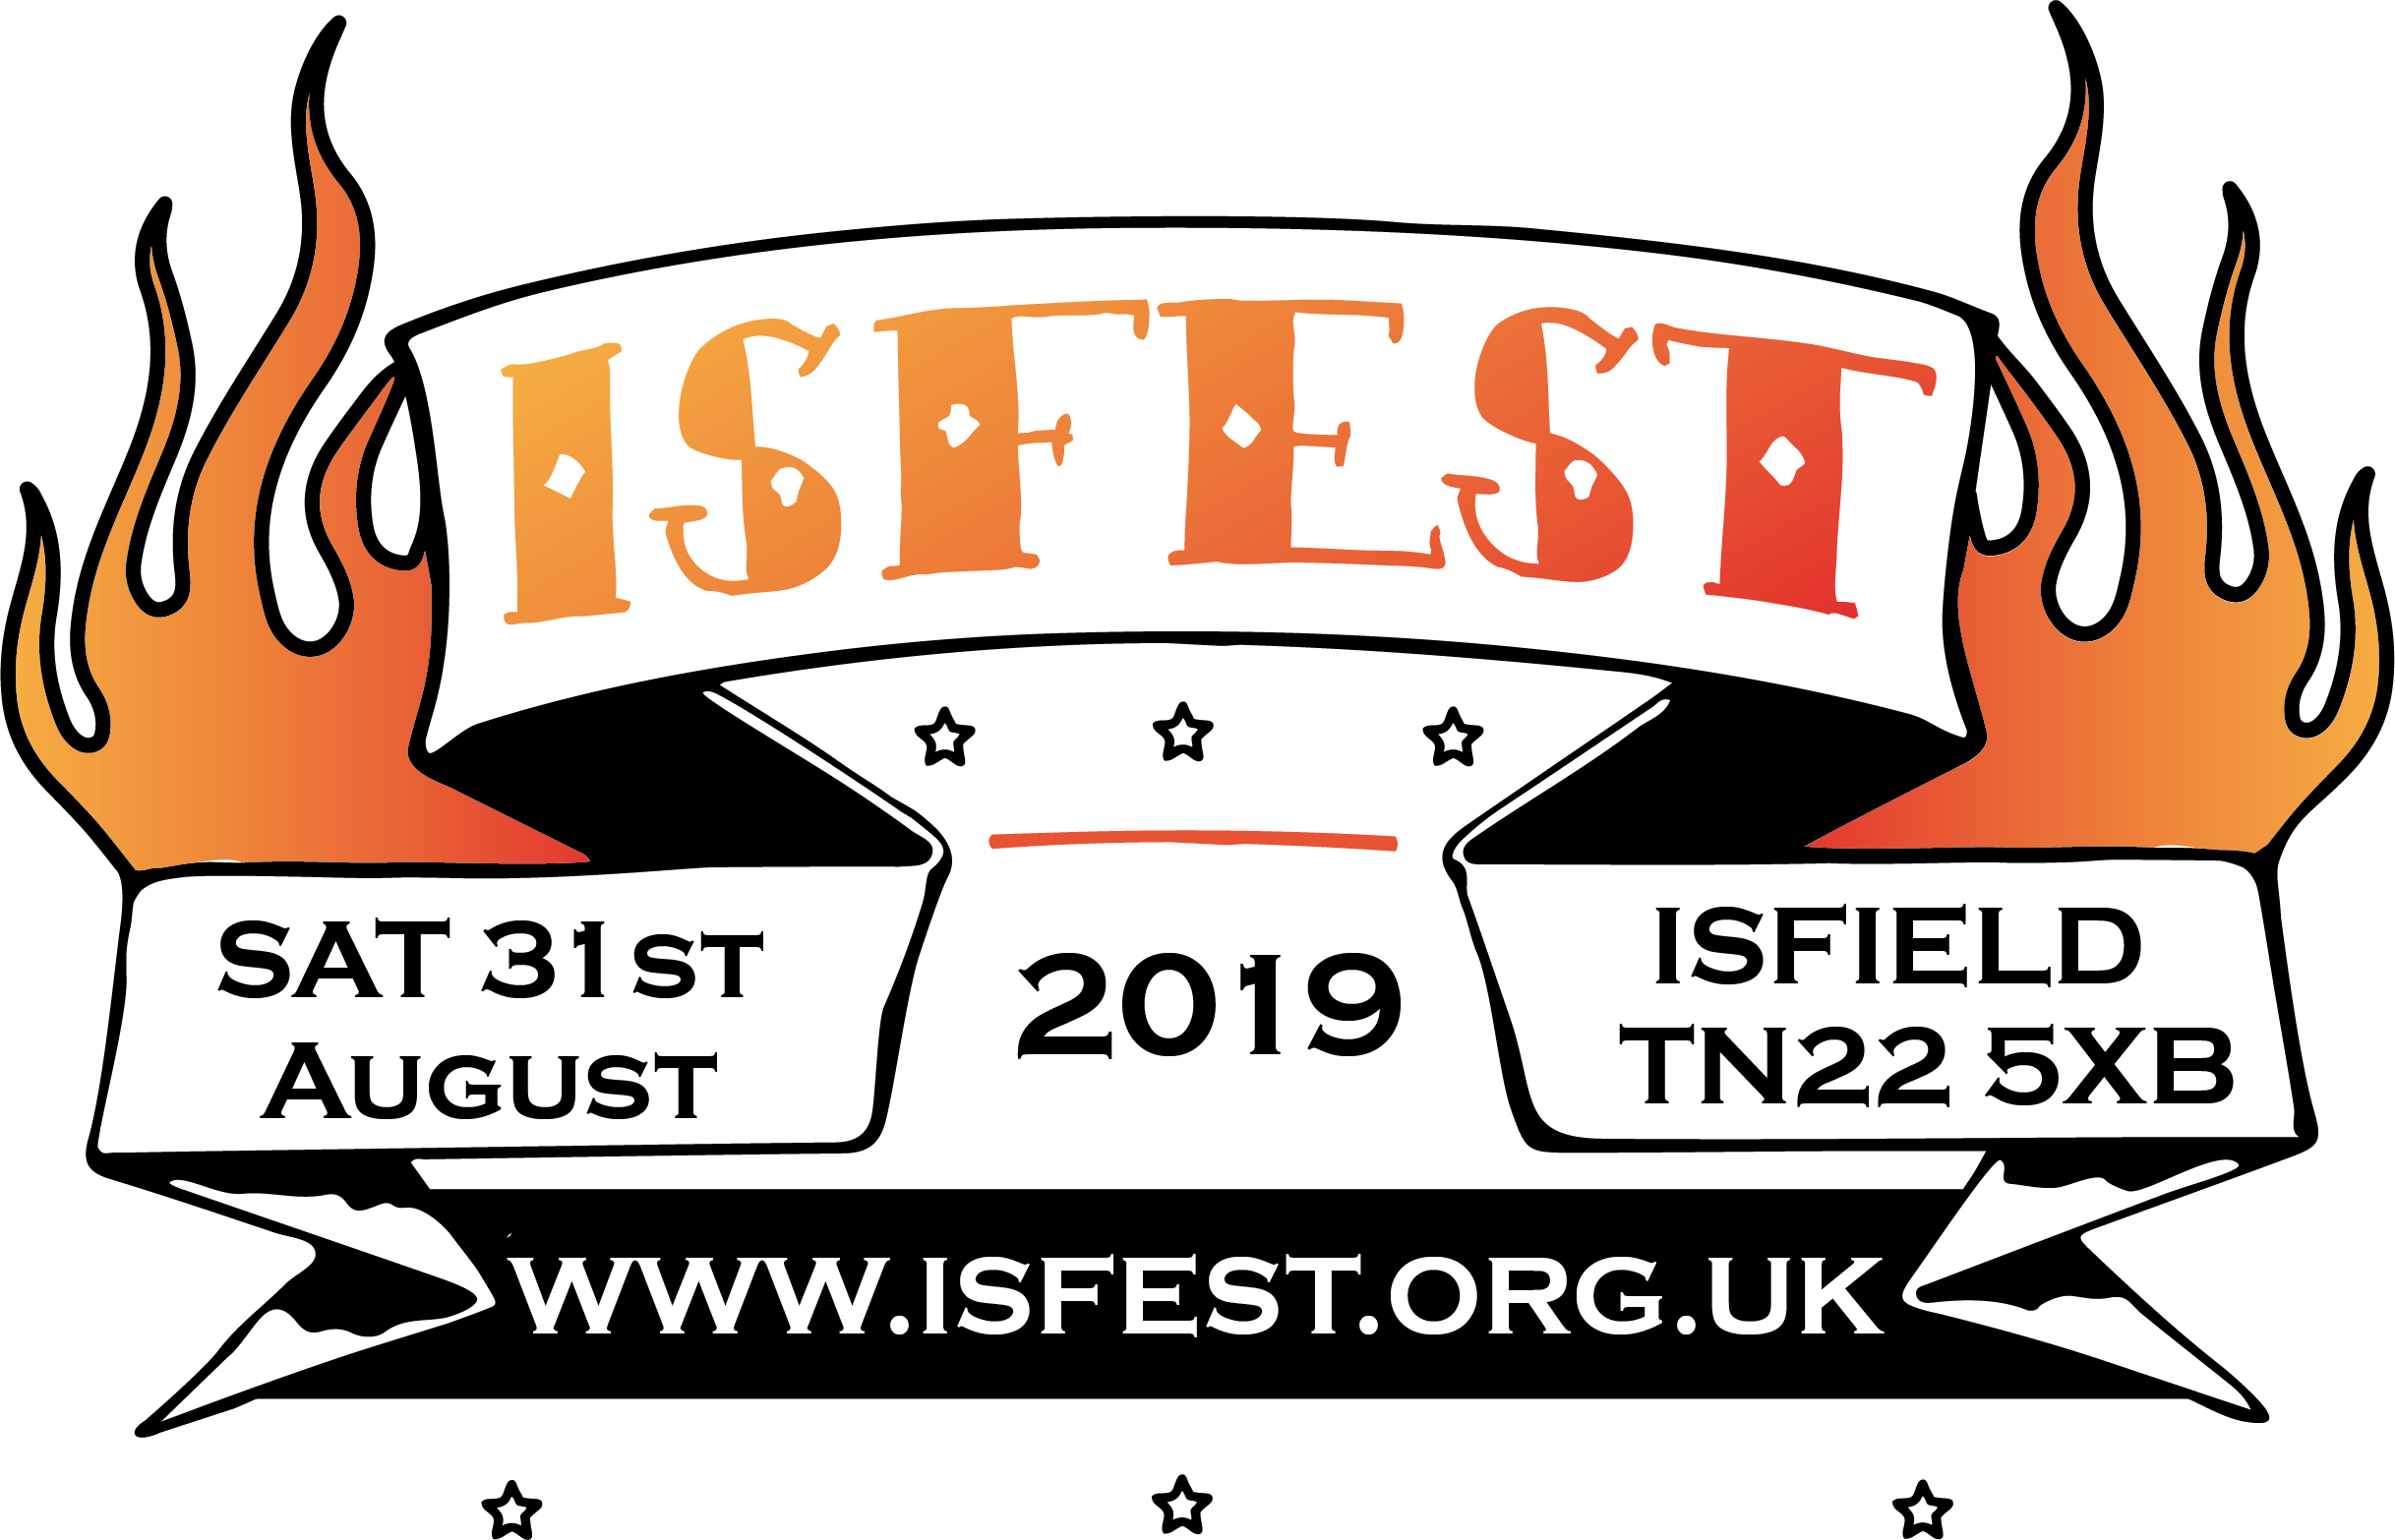 Isfest 2019 banner image